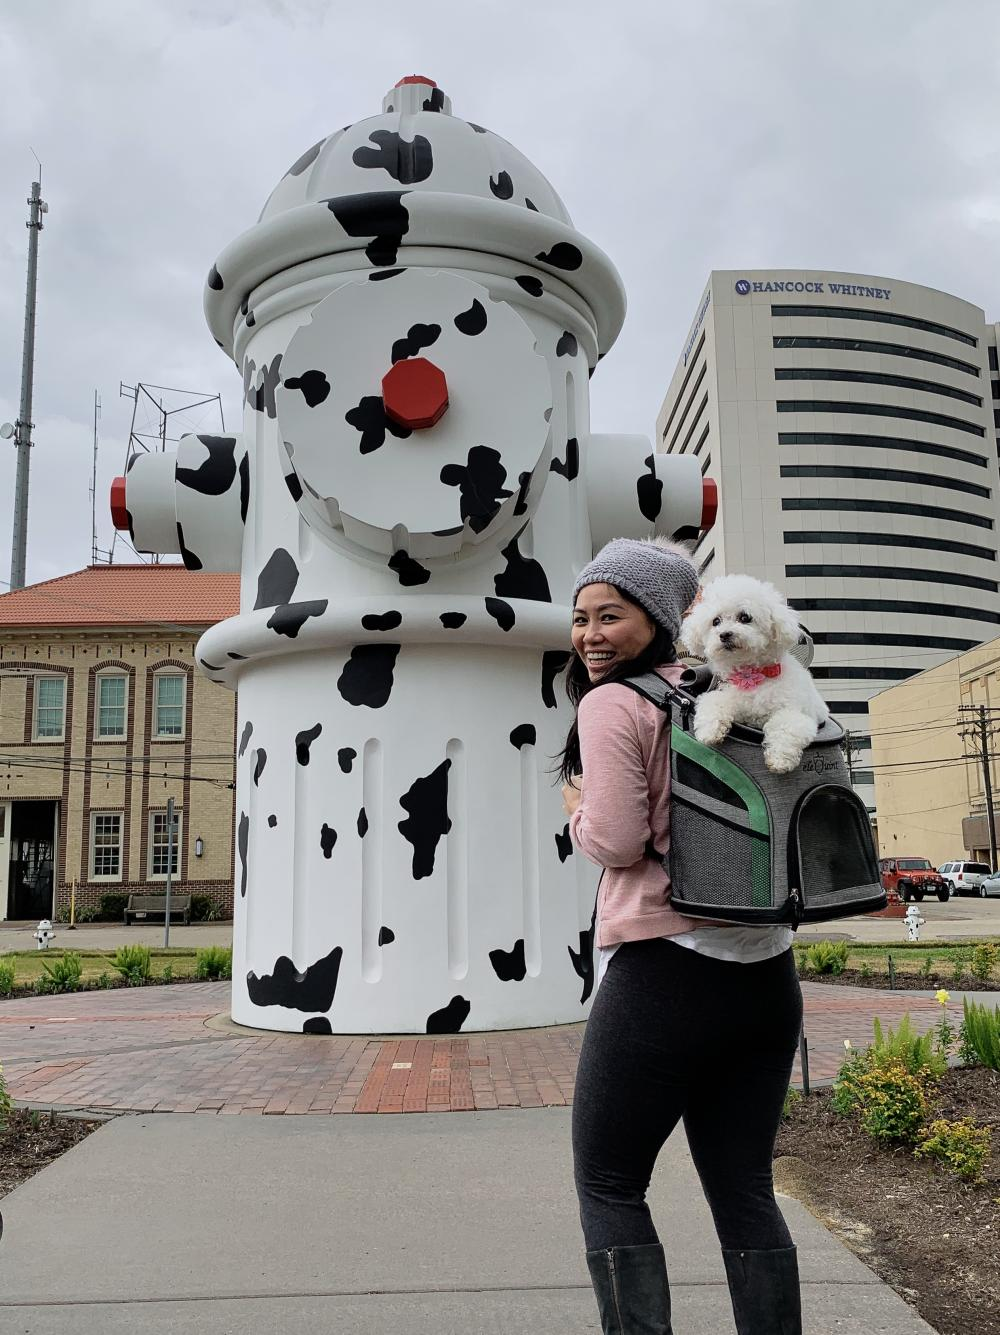 A woman and her dog check out the 24-ft high Giant Fire Hydrant located in front of the Fire Museum of Texas.